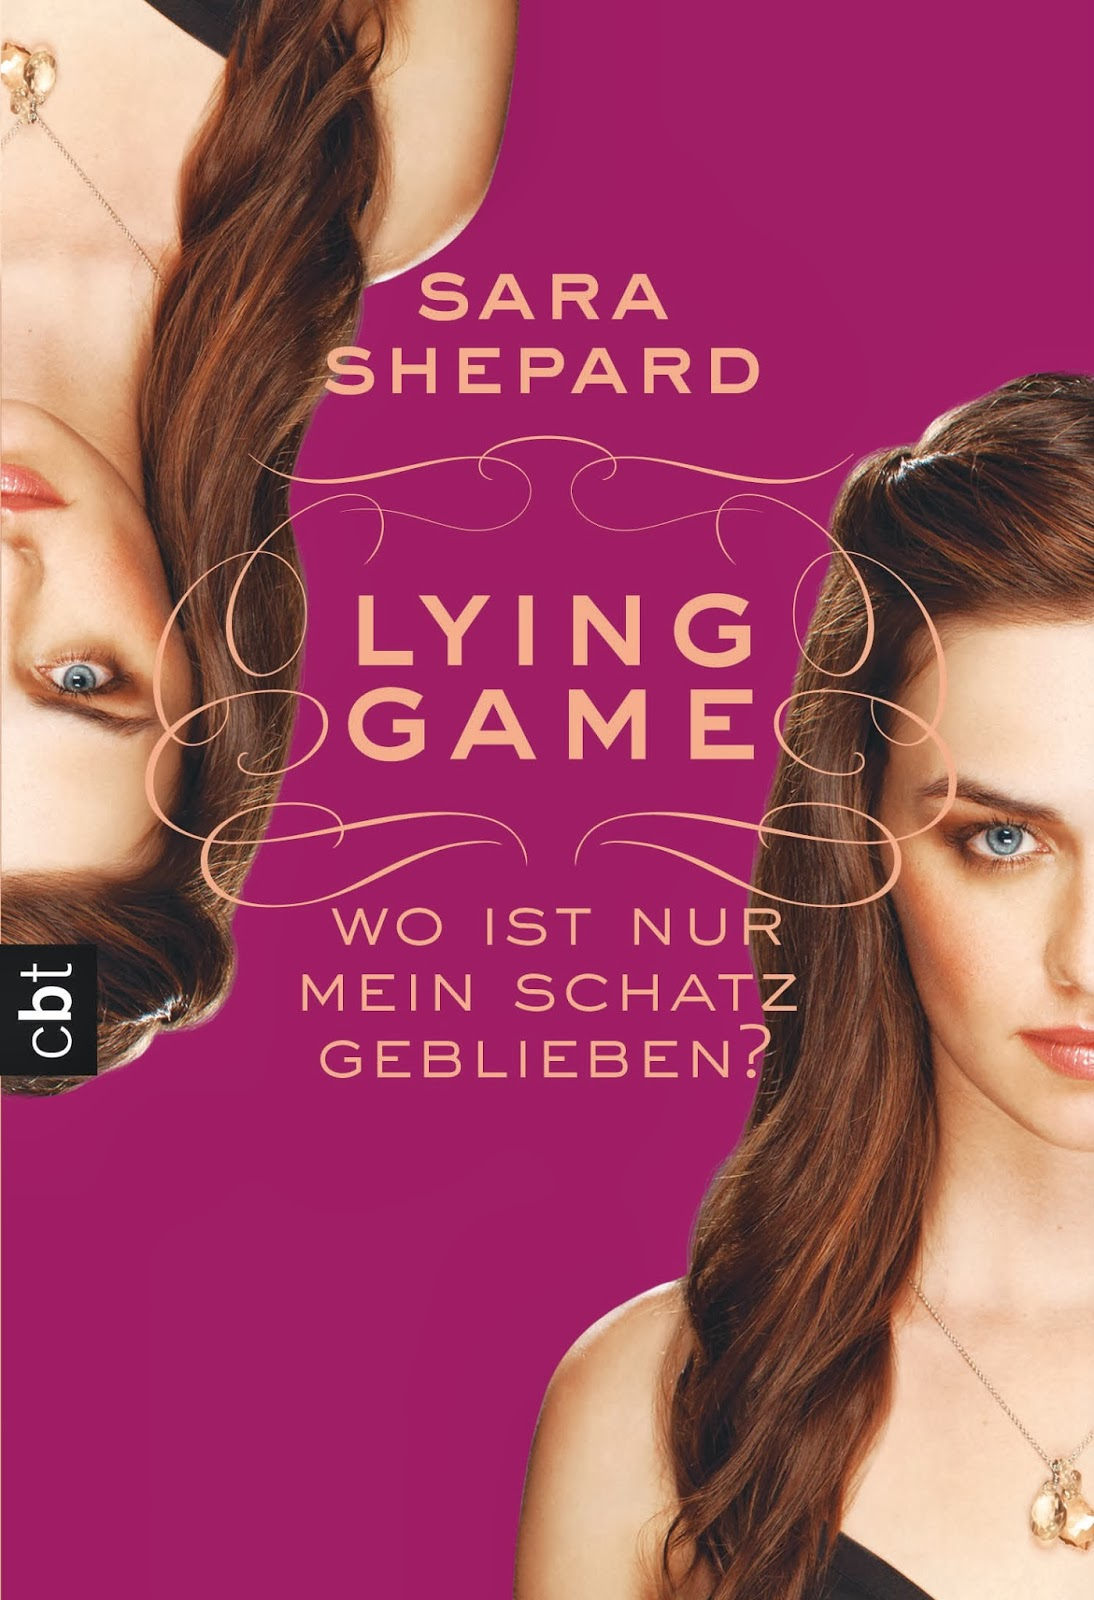 http://www.randomhouse.de/content/edition/covervoila_hires/Shepard_SLYING_GAME_4_-_Schatz_133438.jpg